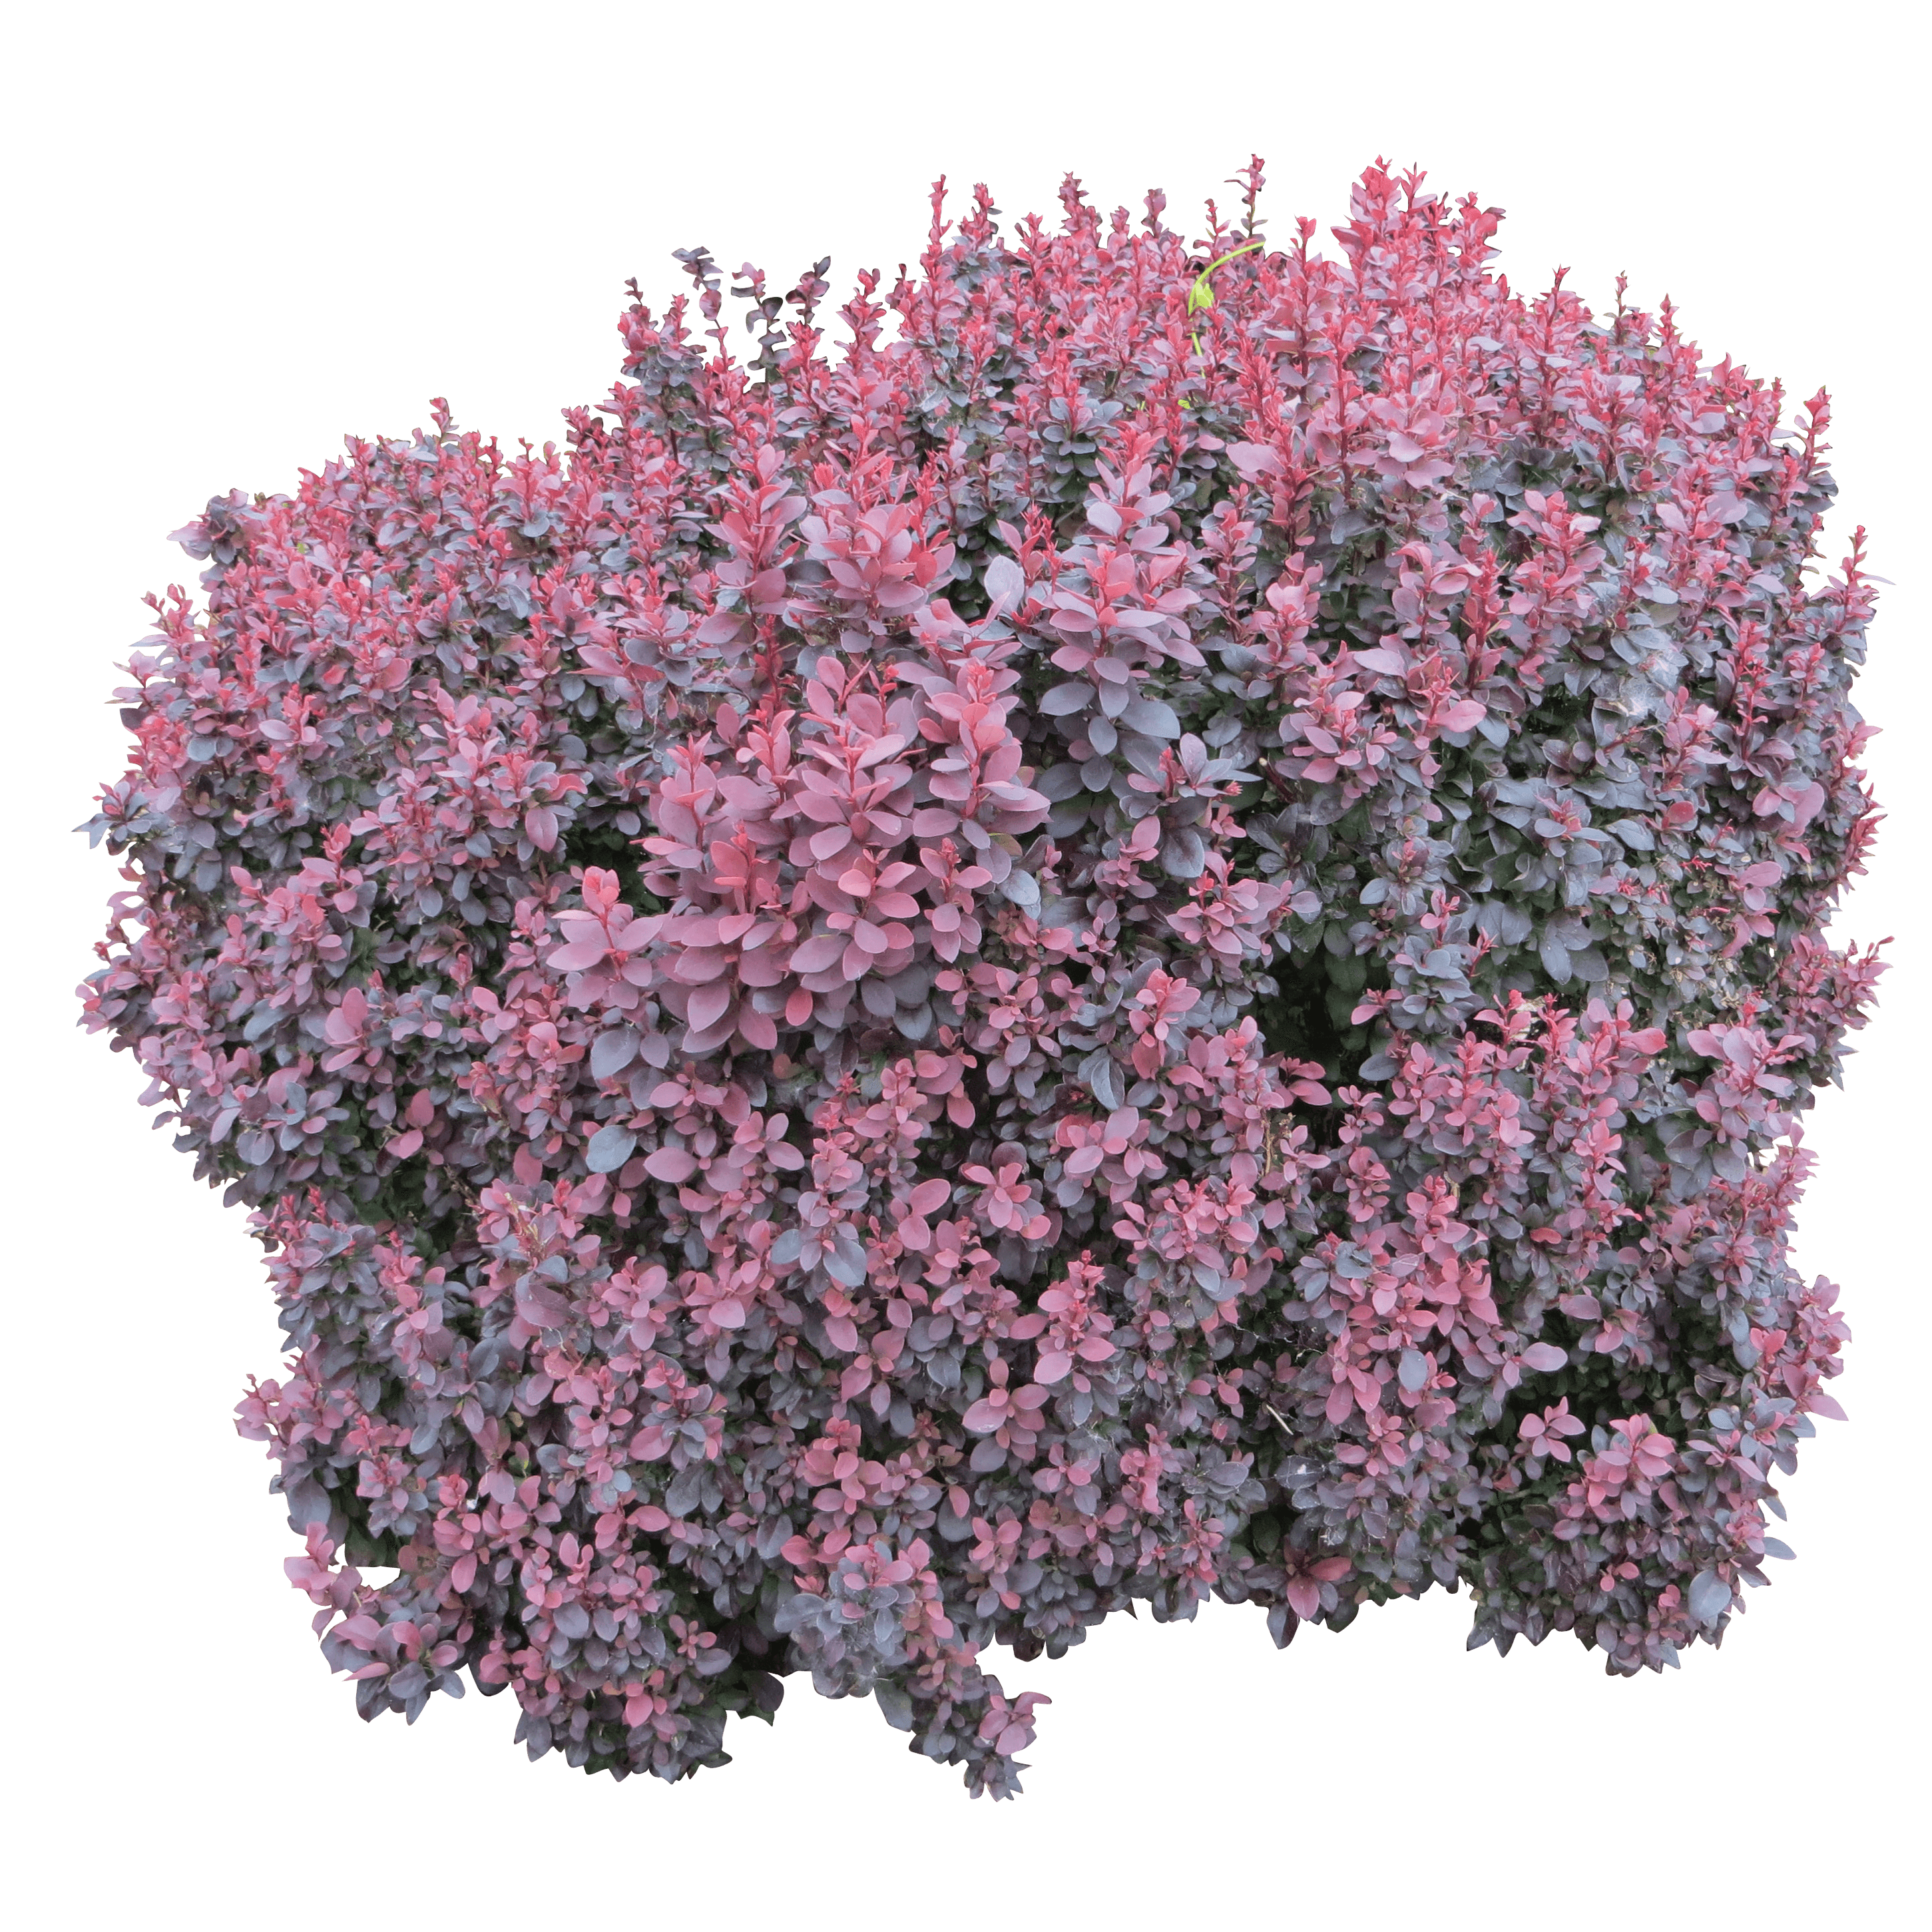 Flower Plant Top View Png Download Bush Png Image Hq Png Image Freepngimg